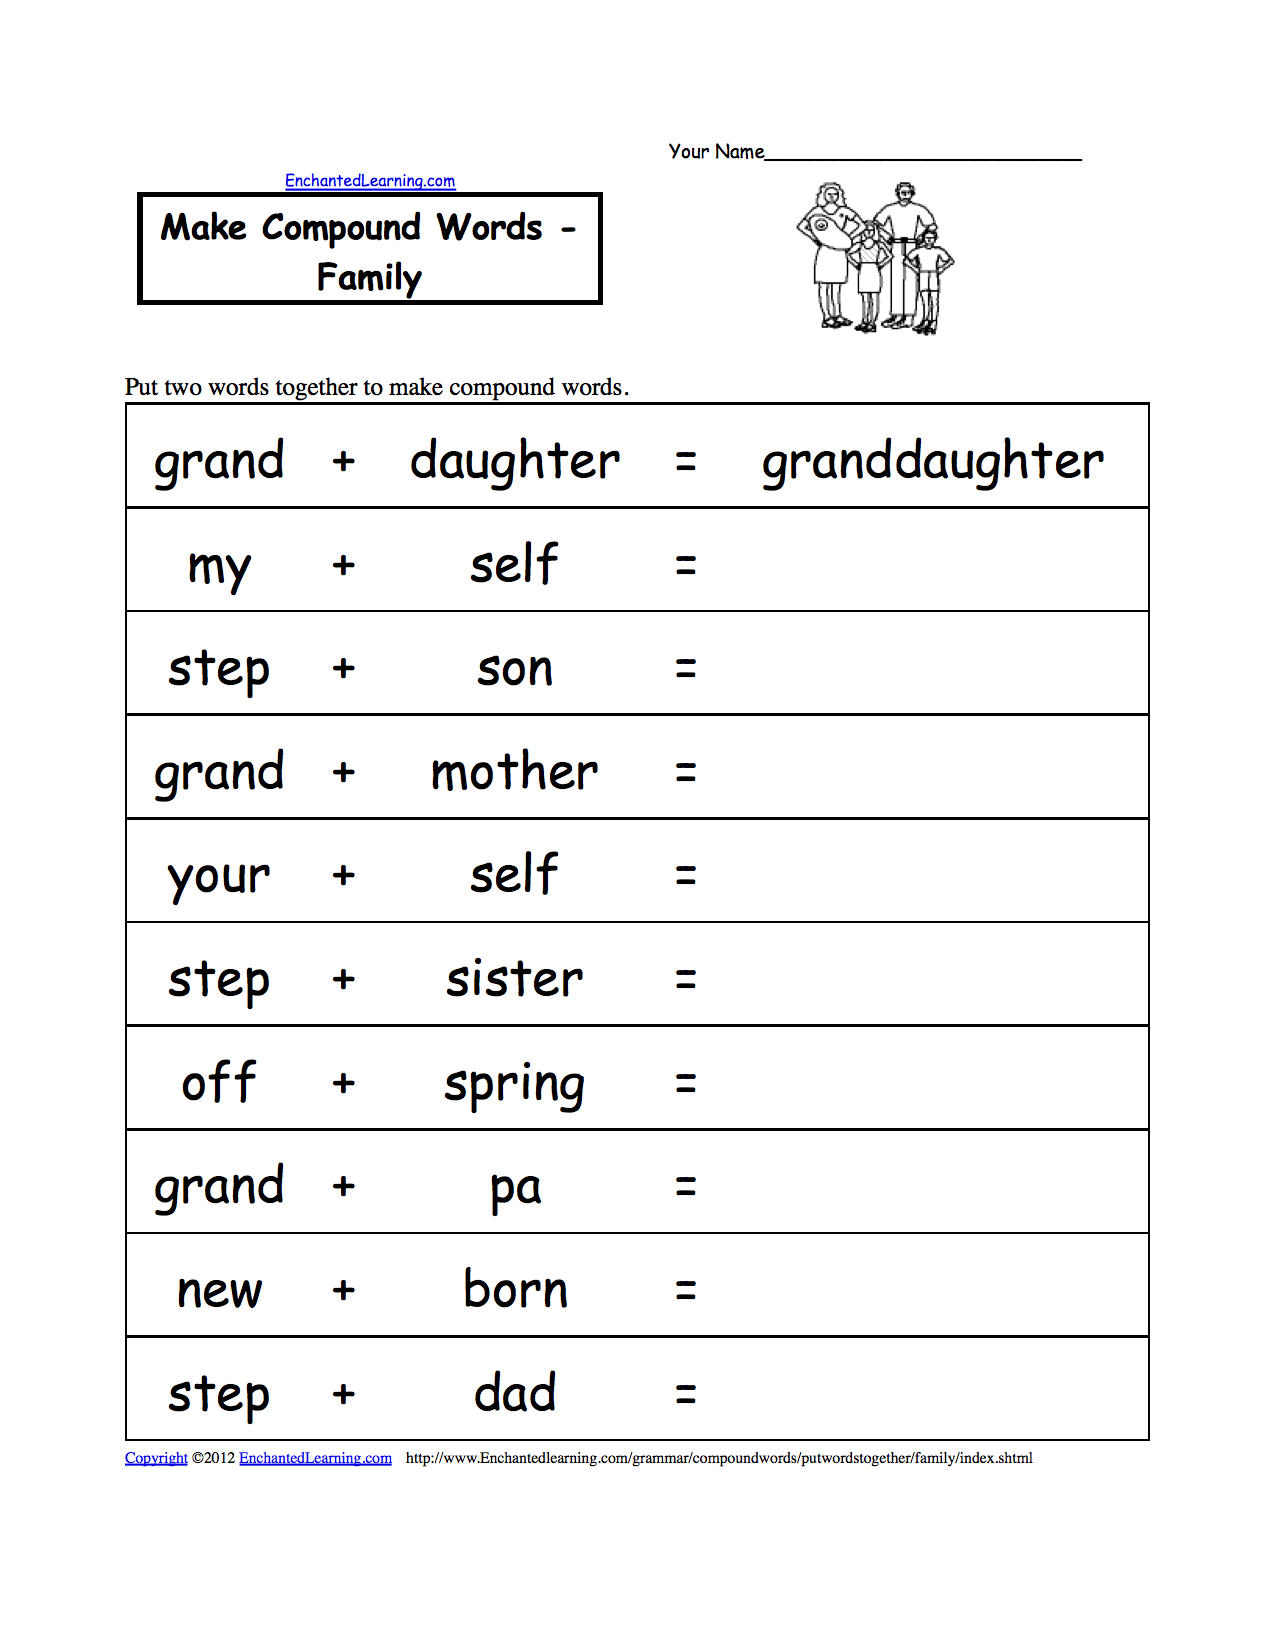 Free Worksheet Italian Language Worksheets family theme page at enchantedlearning com make compound words